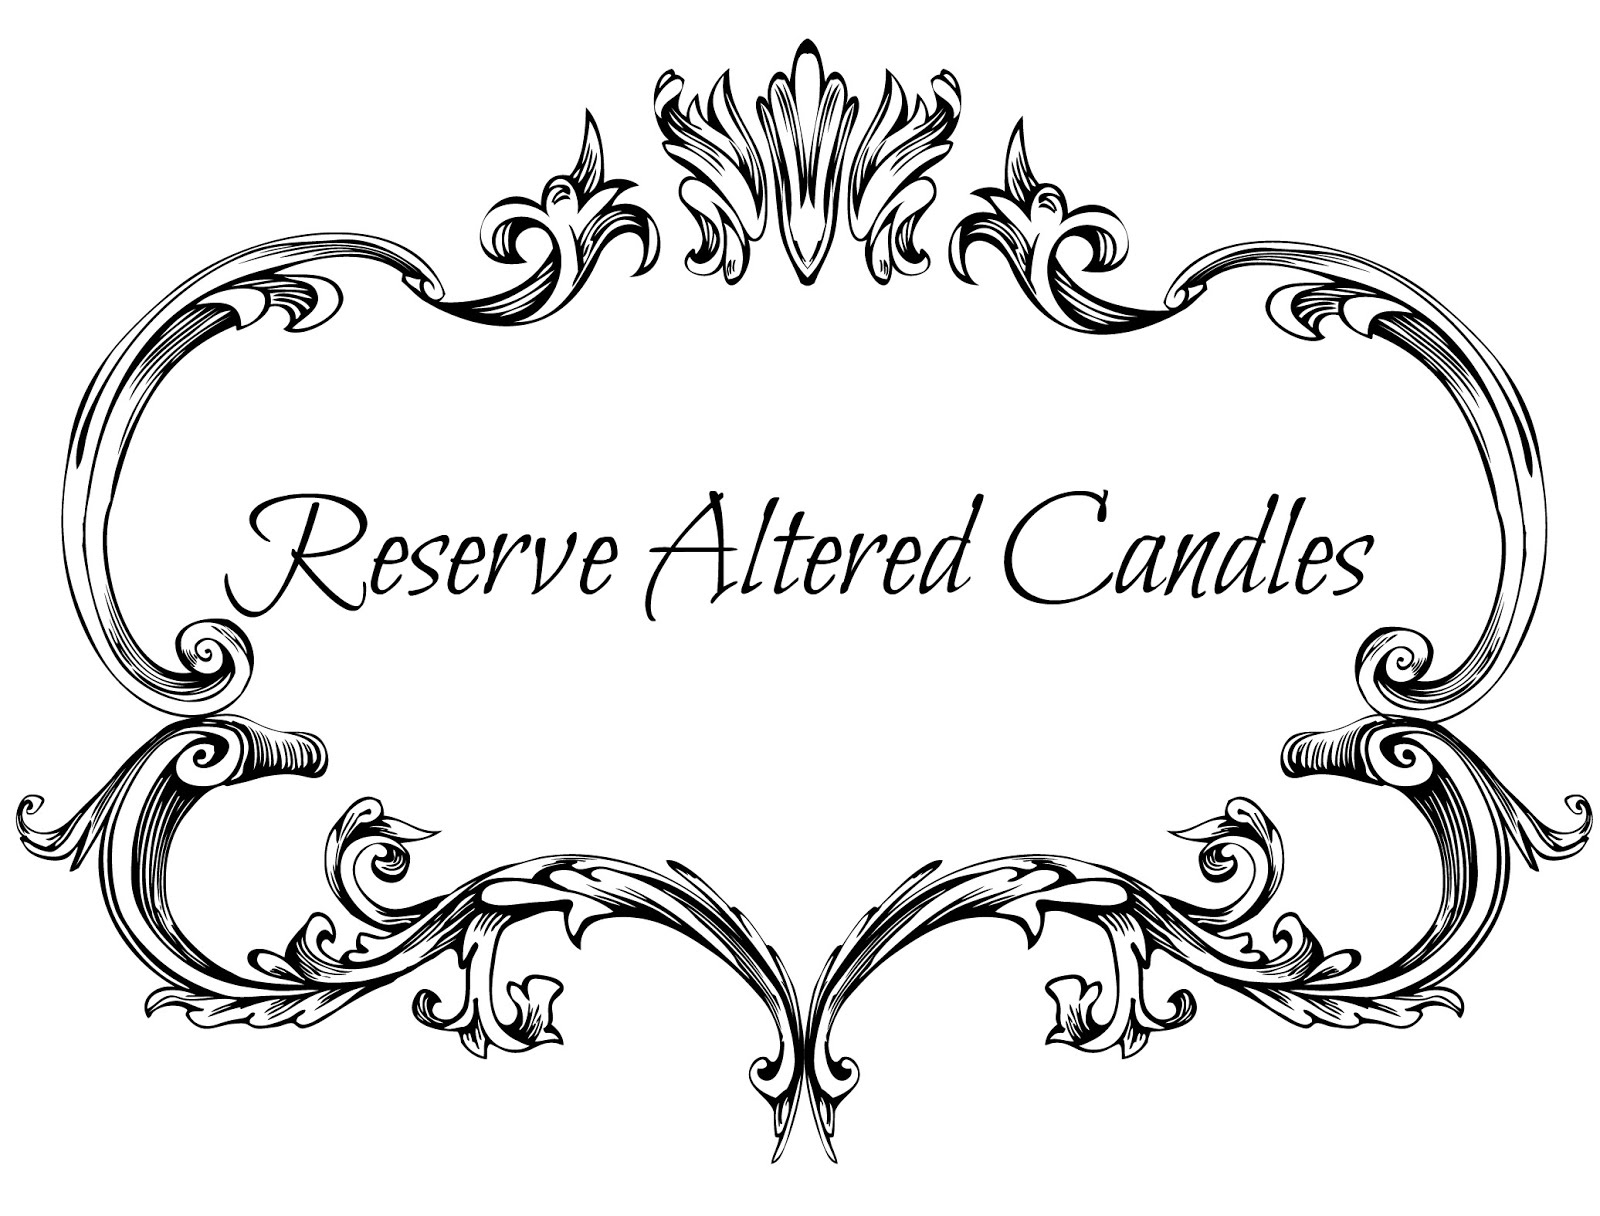 Reserve Altered Candles